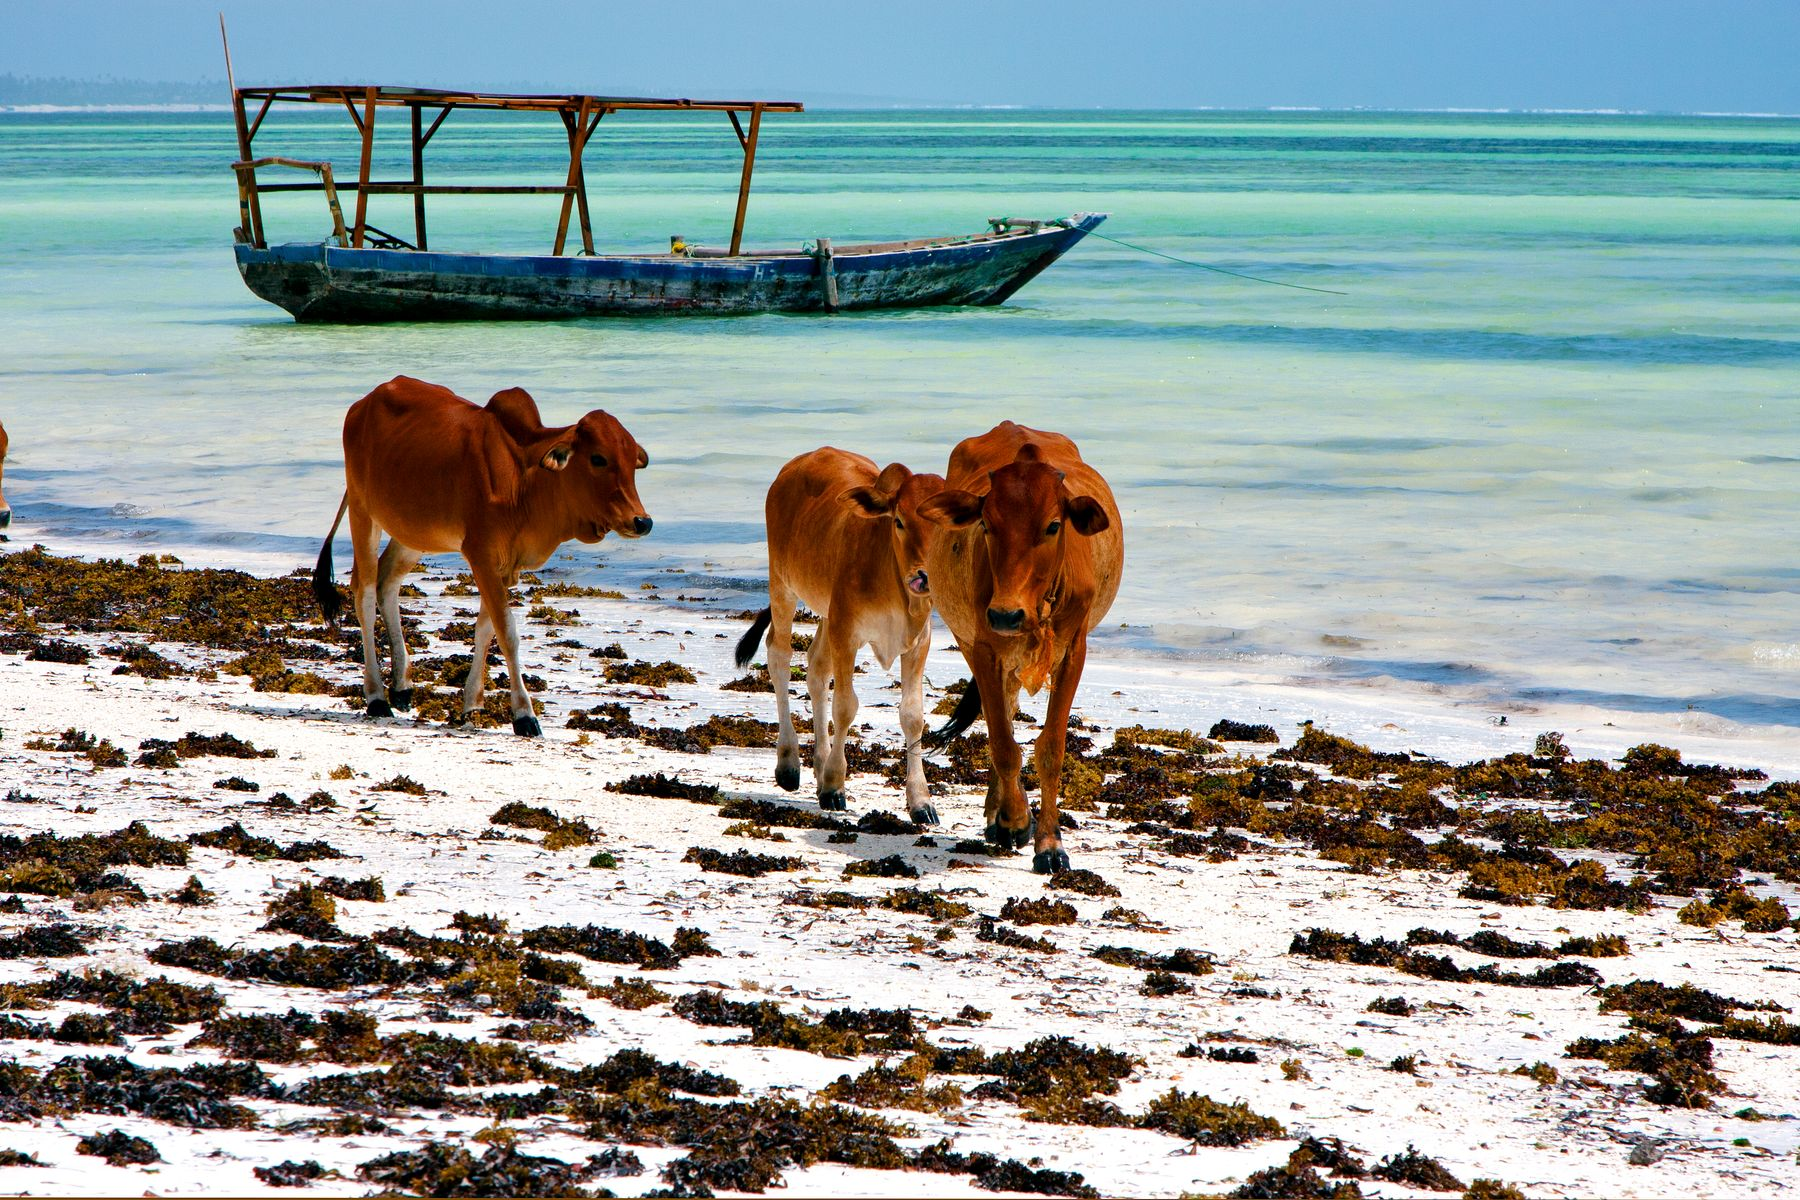 Boats and cows chilling at the Blue Lagoon in Zanzibar